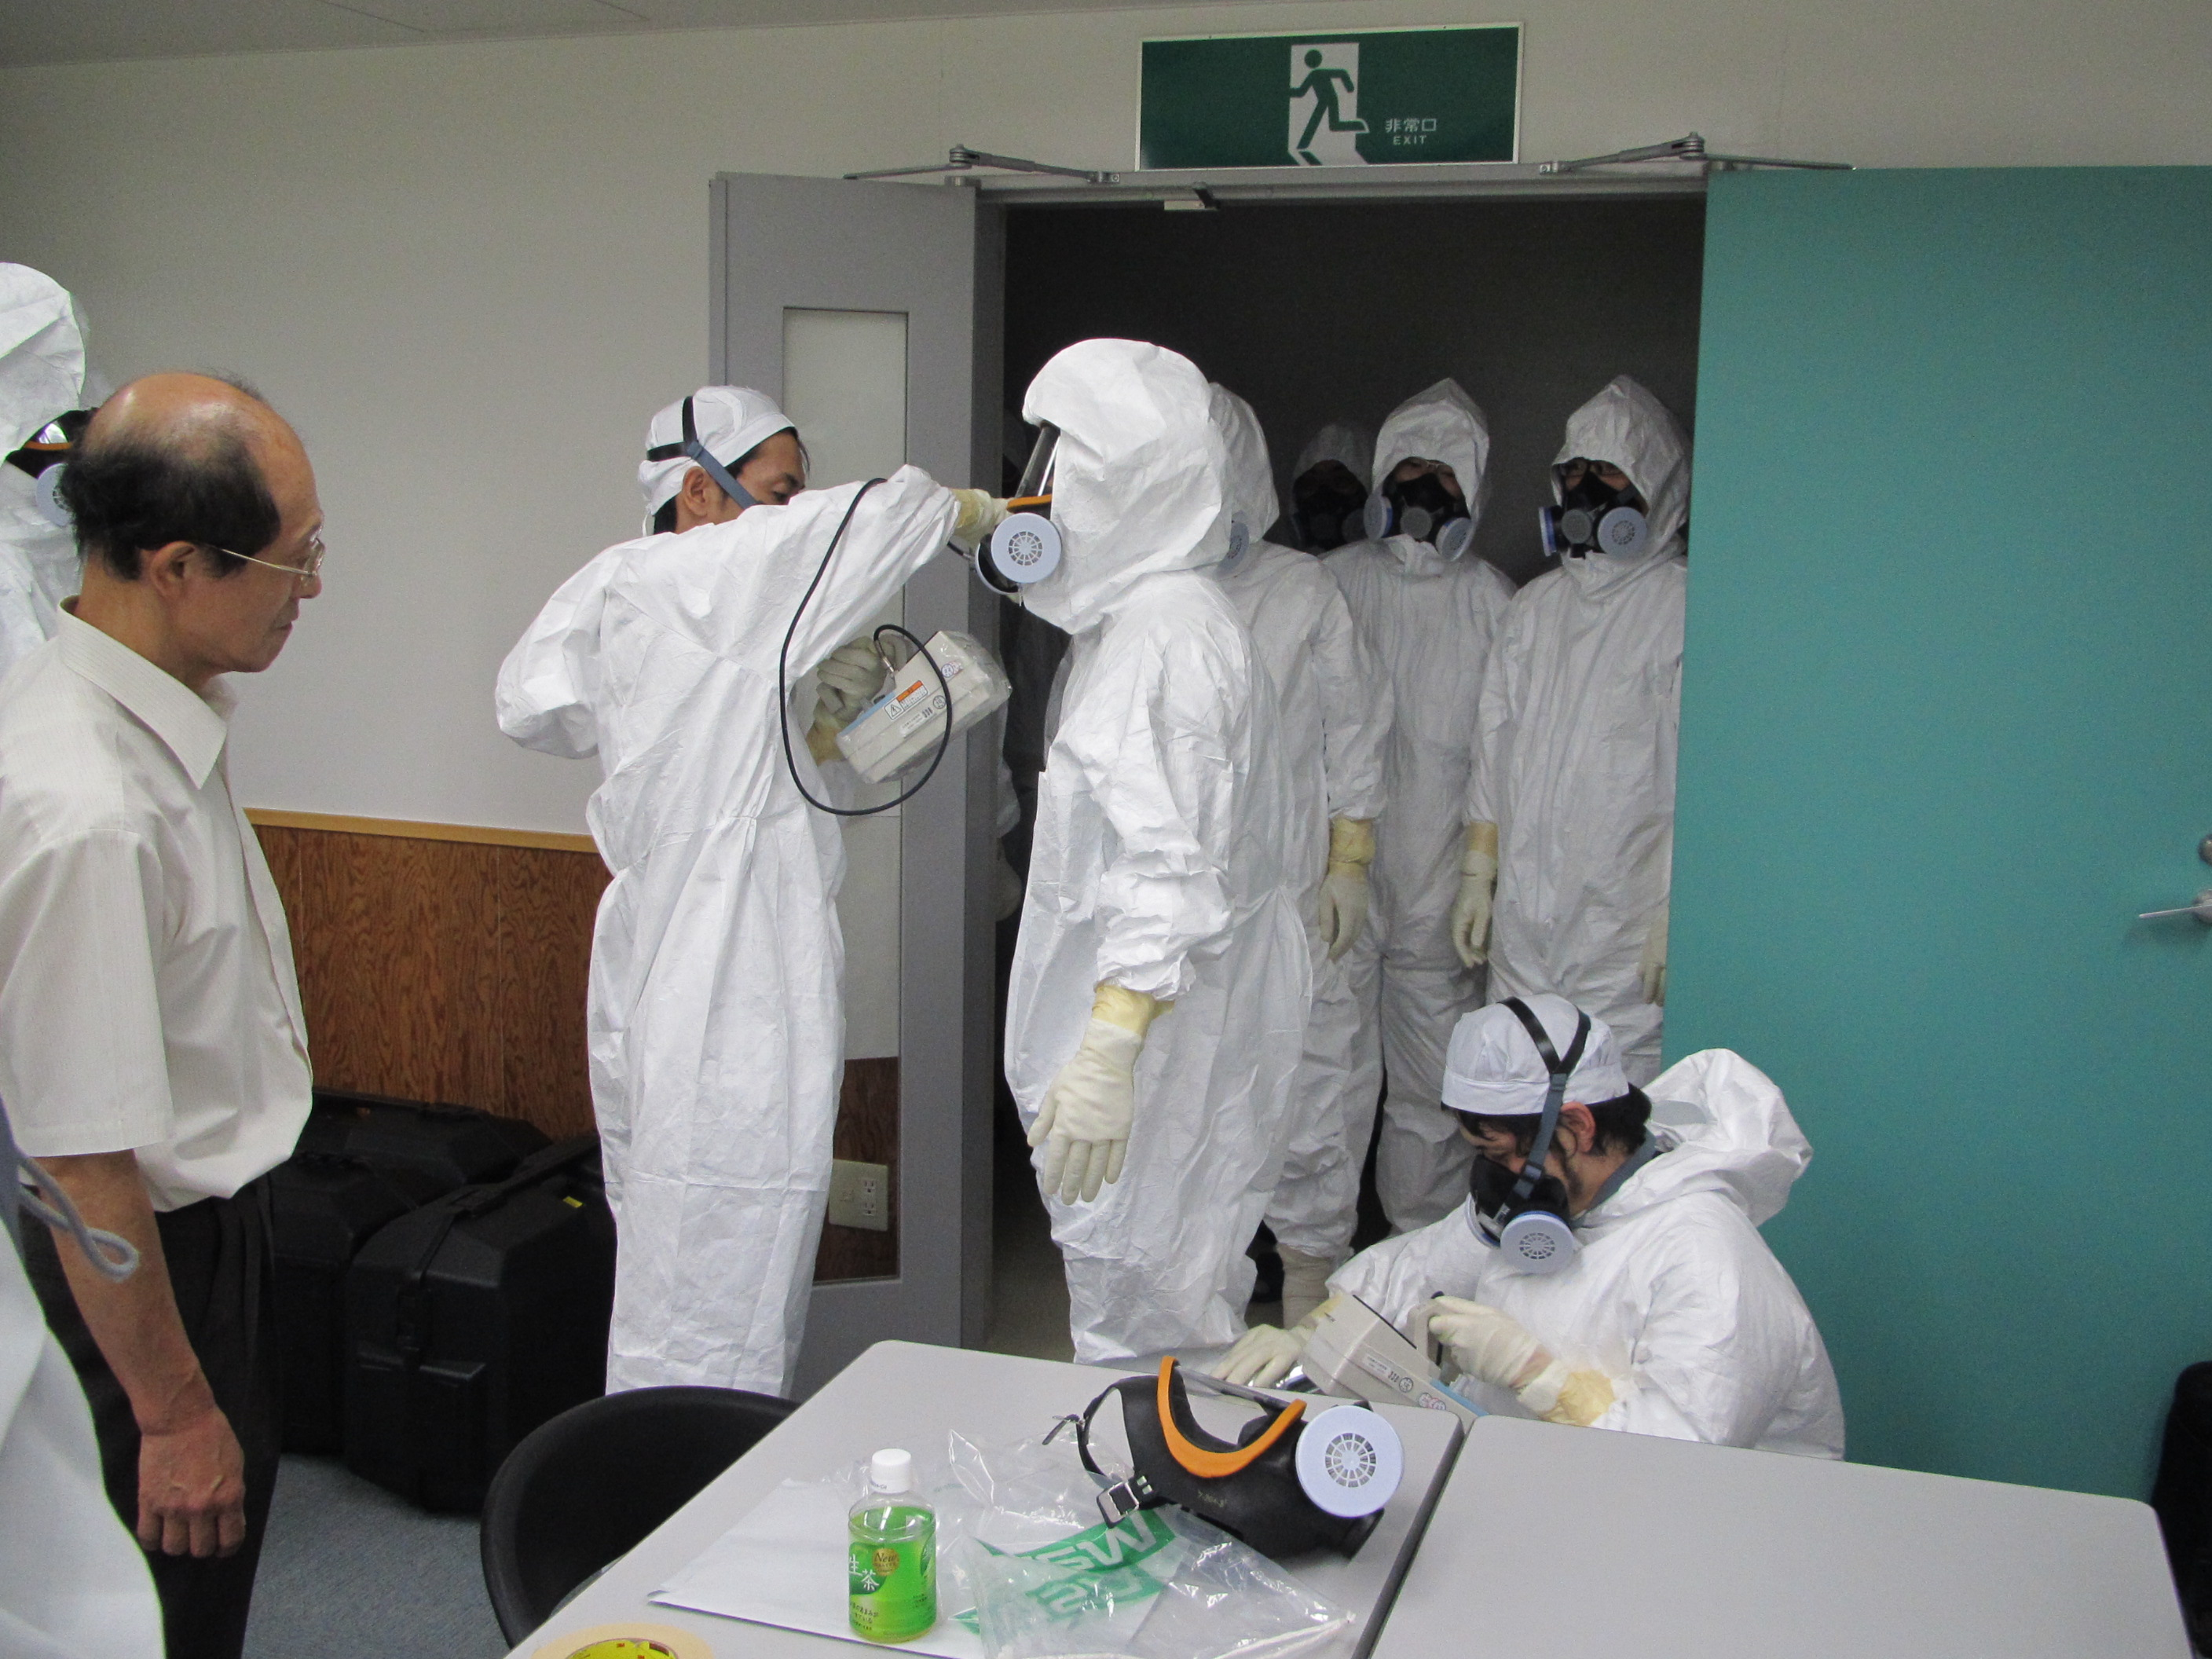 Training of radiation measuring workers